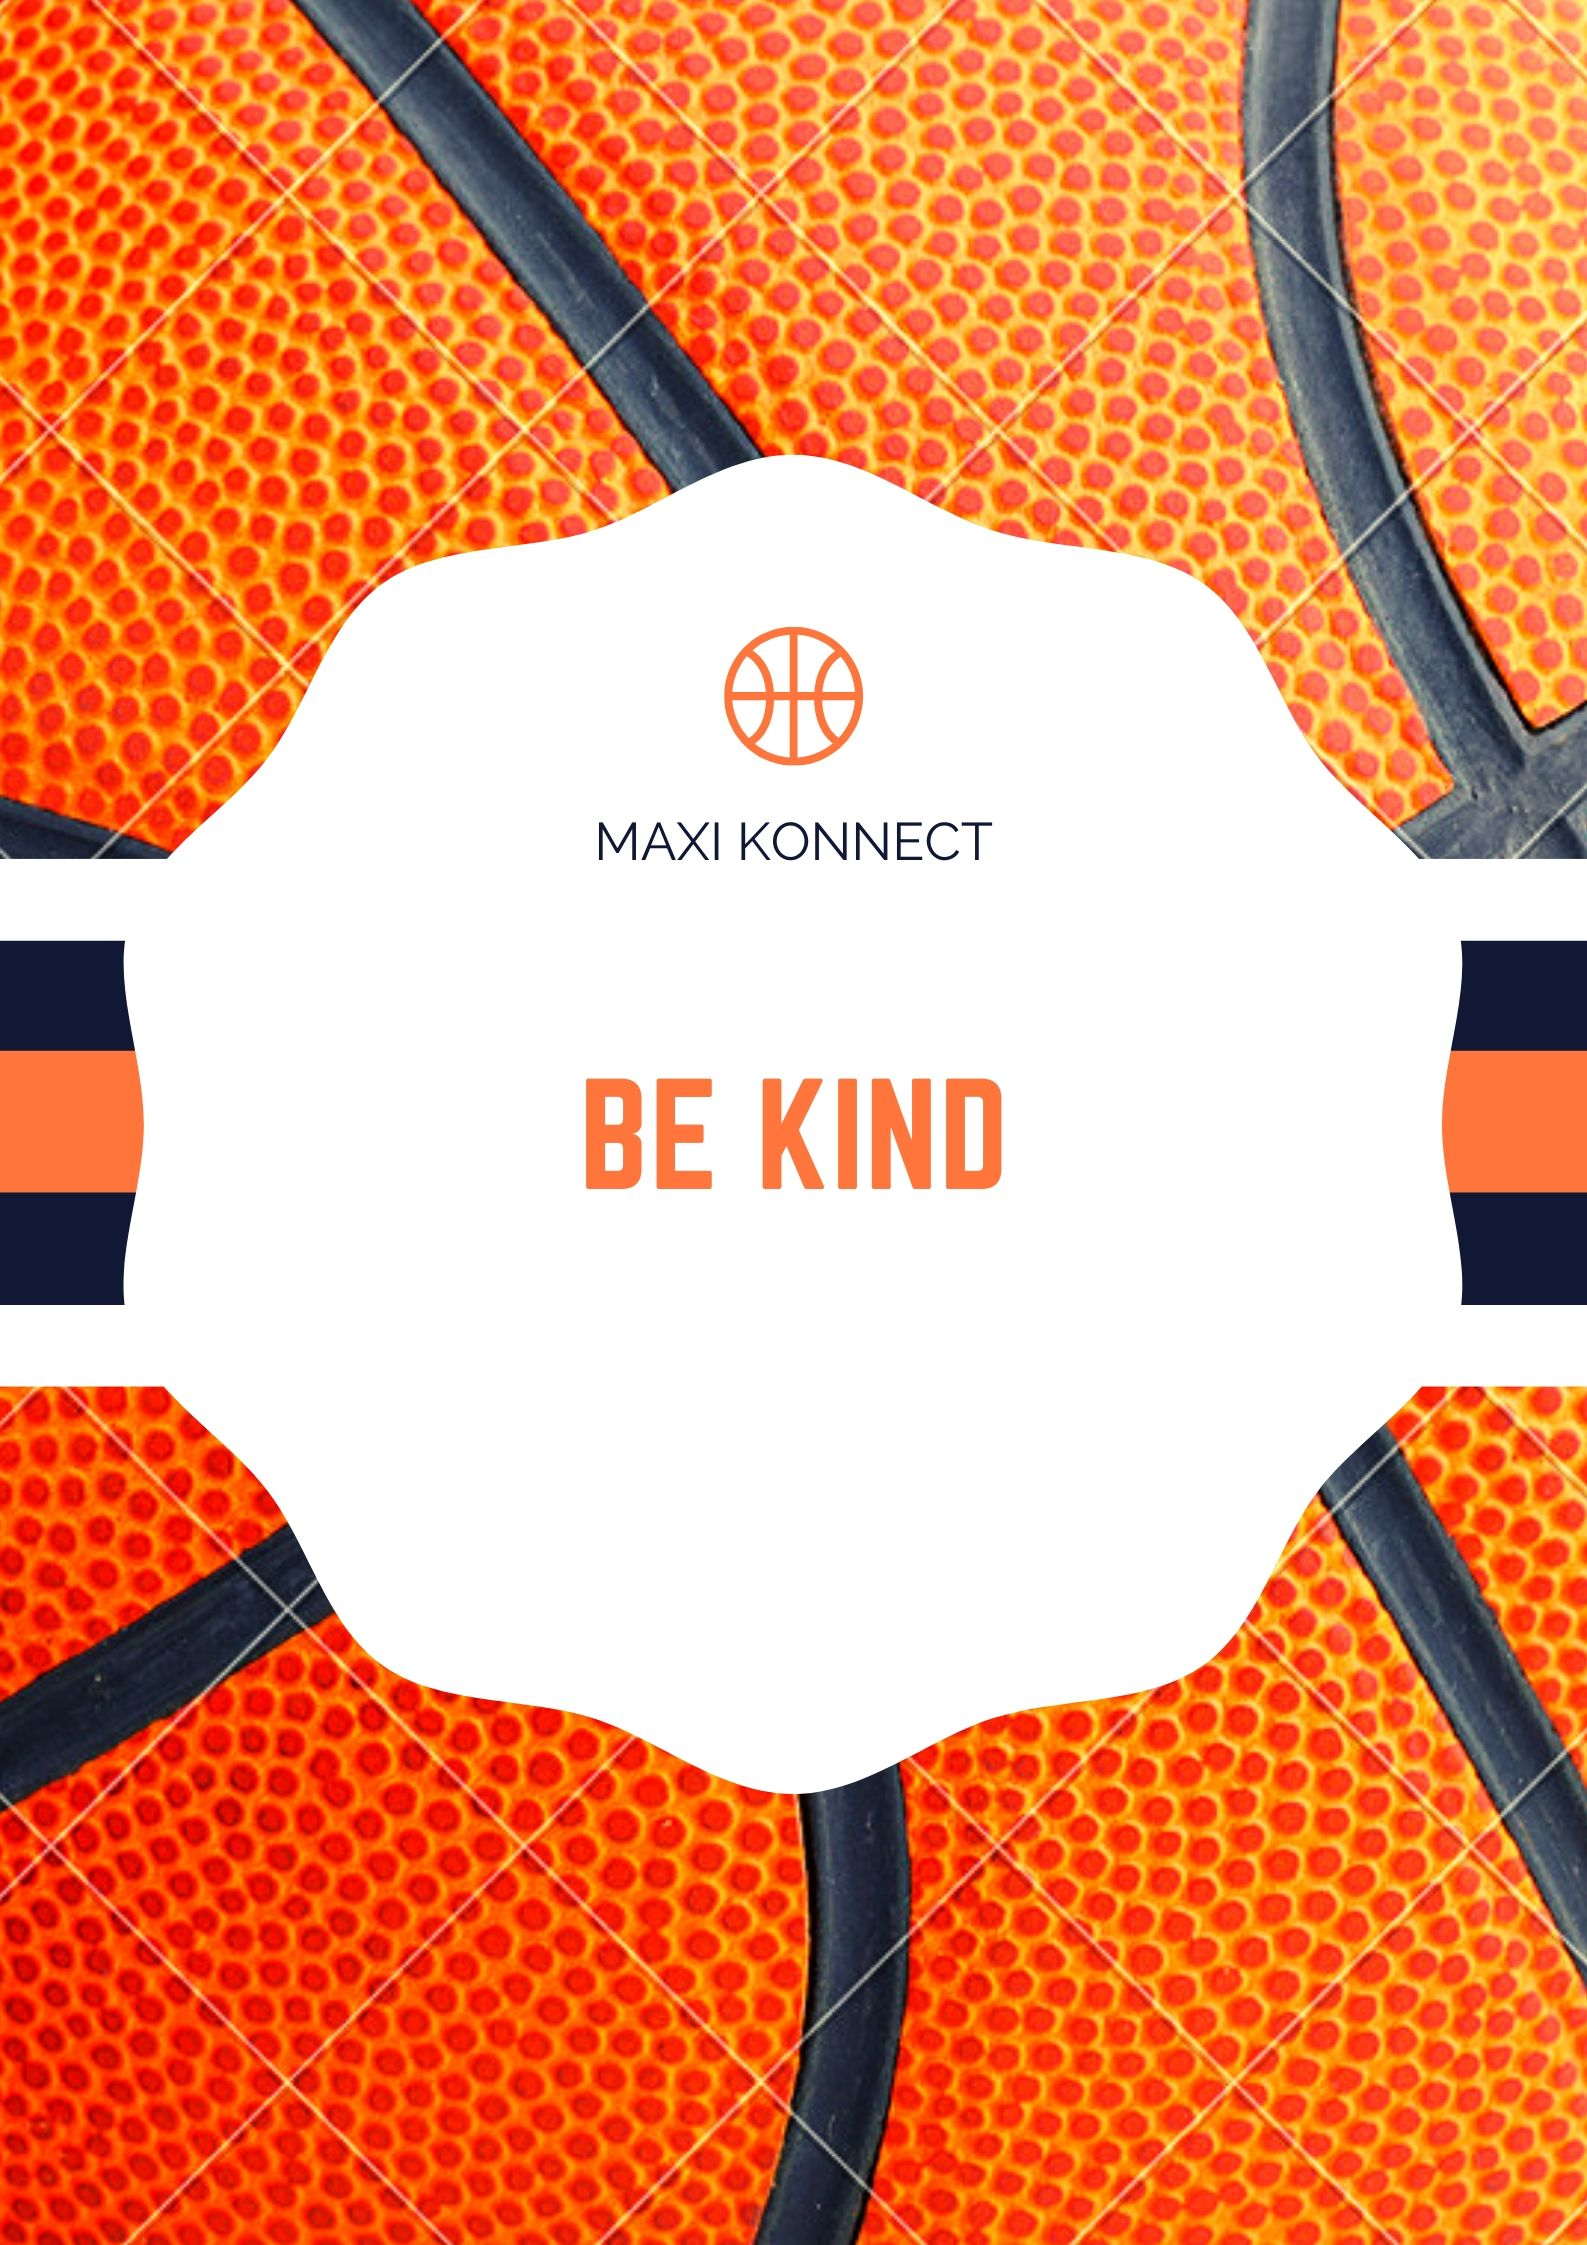 Maxi Konnect - Be Kind